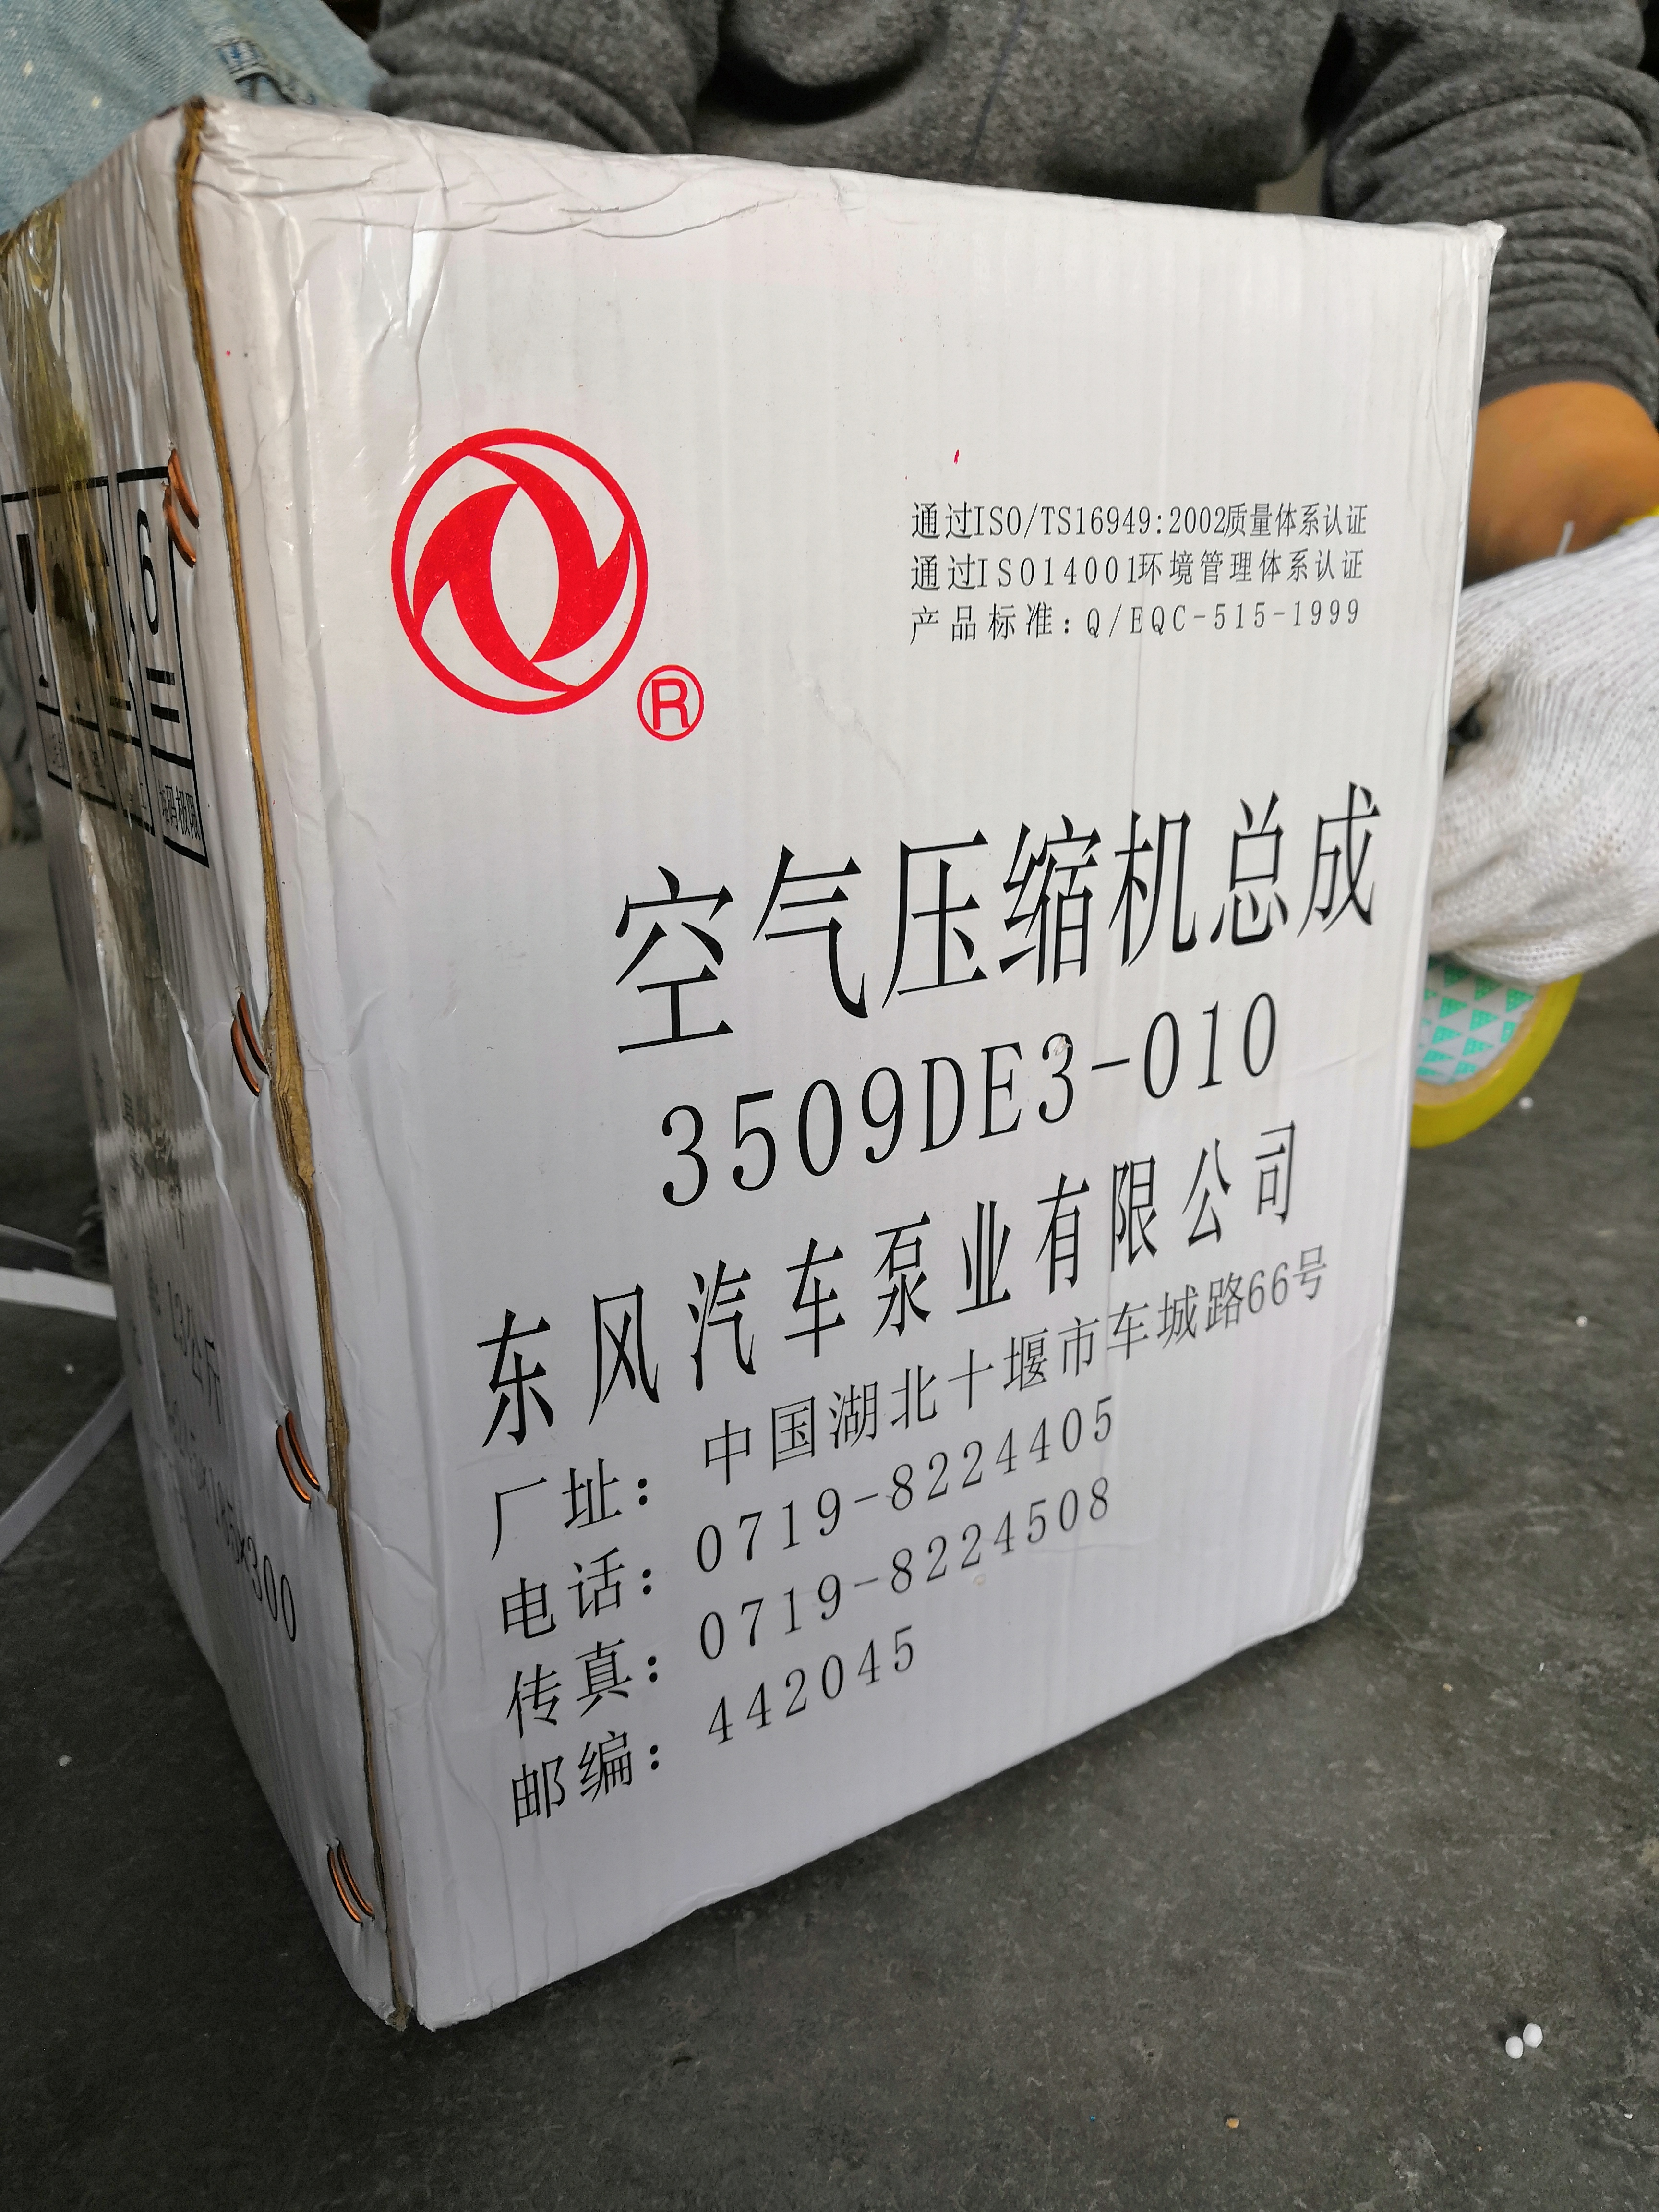 3509DE3-010, AIR COMPRESSOR, DONGFENG PARTS